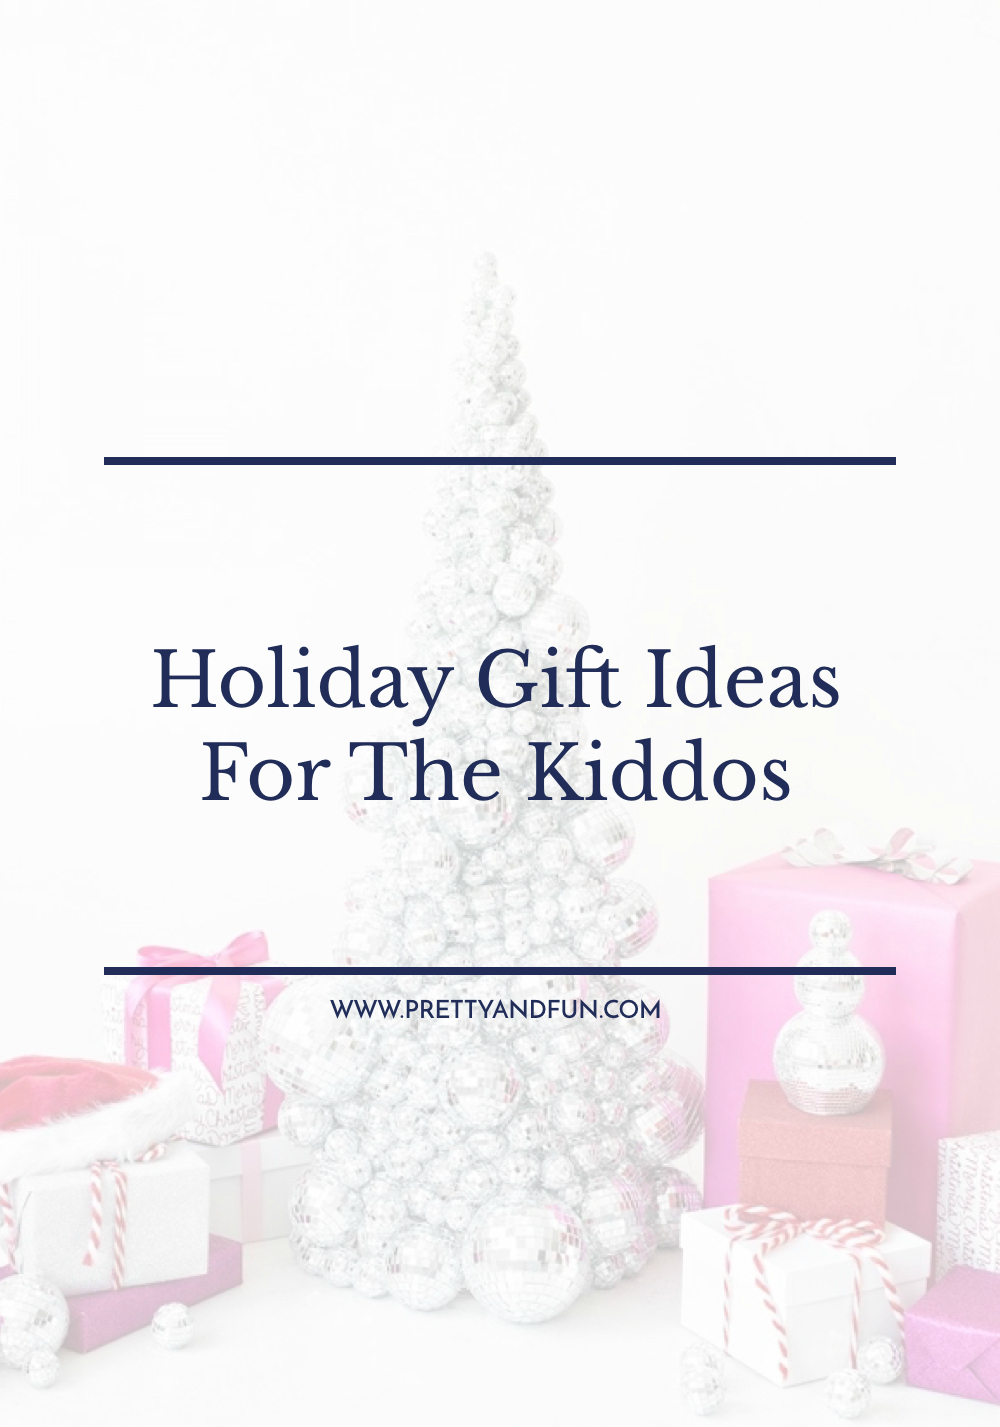 Holiday Gift Ideas for Kids.